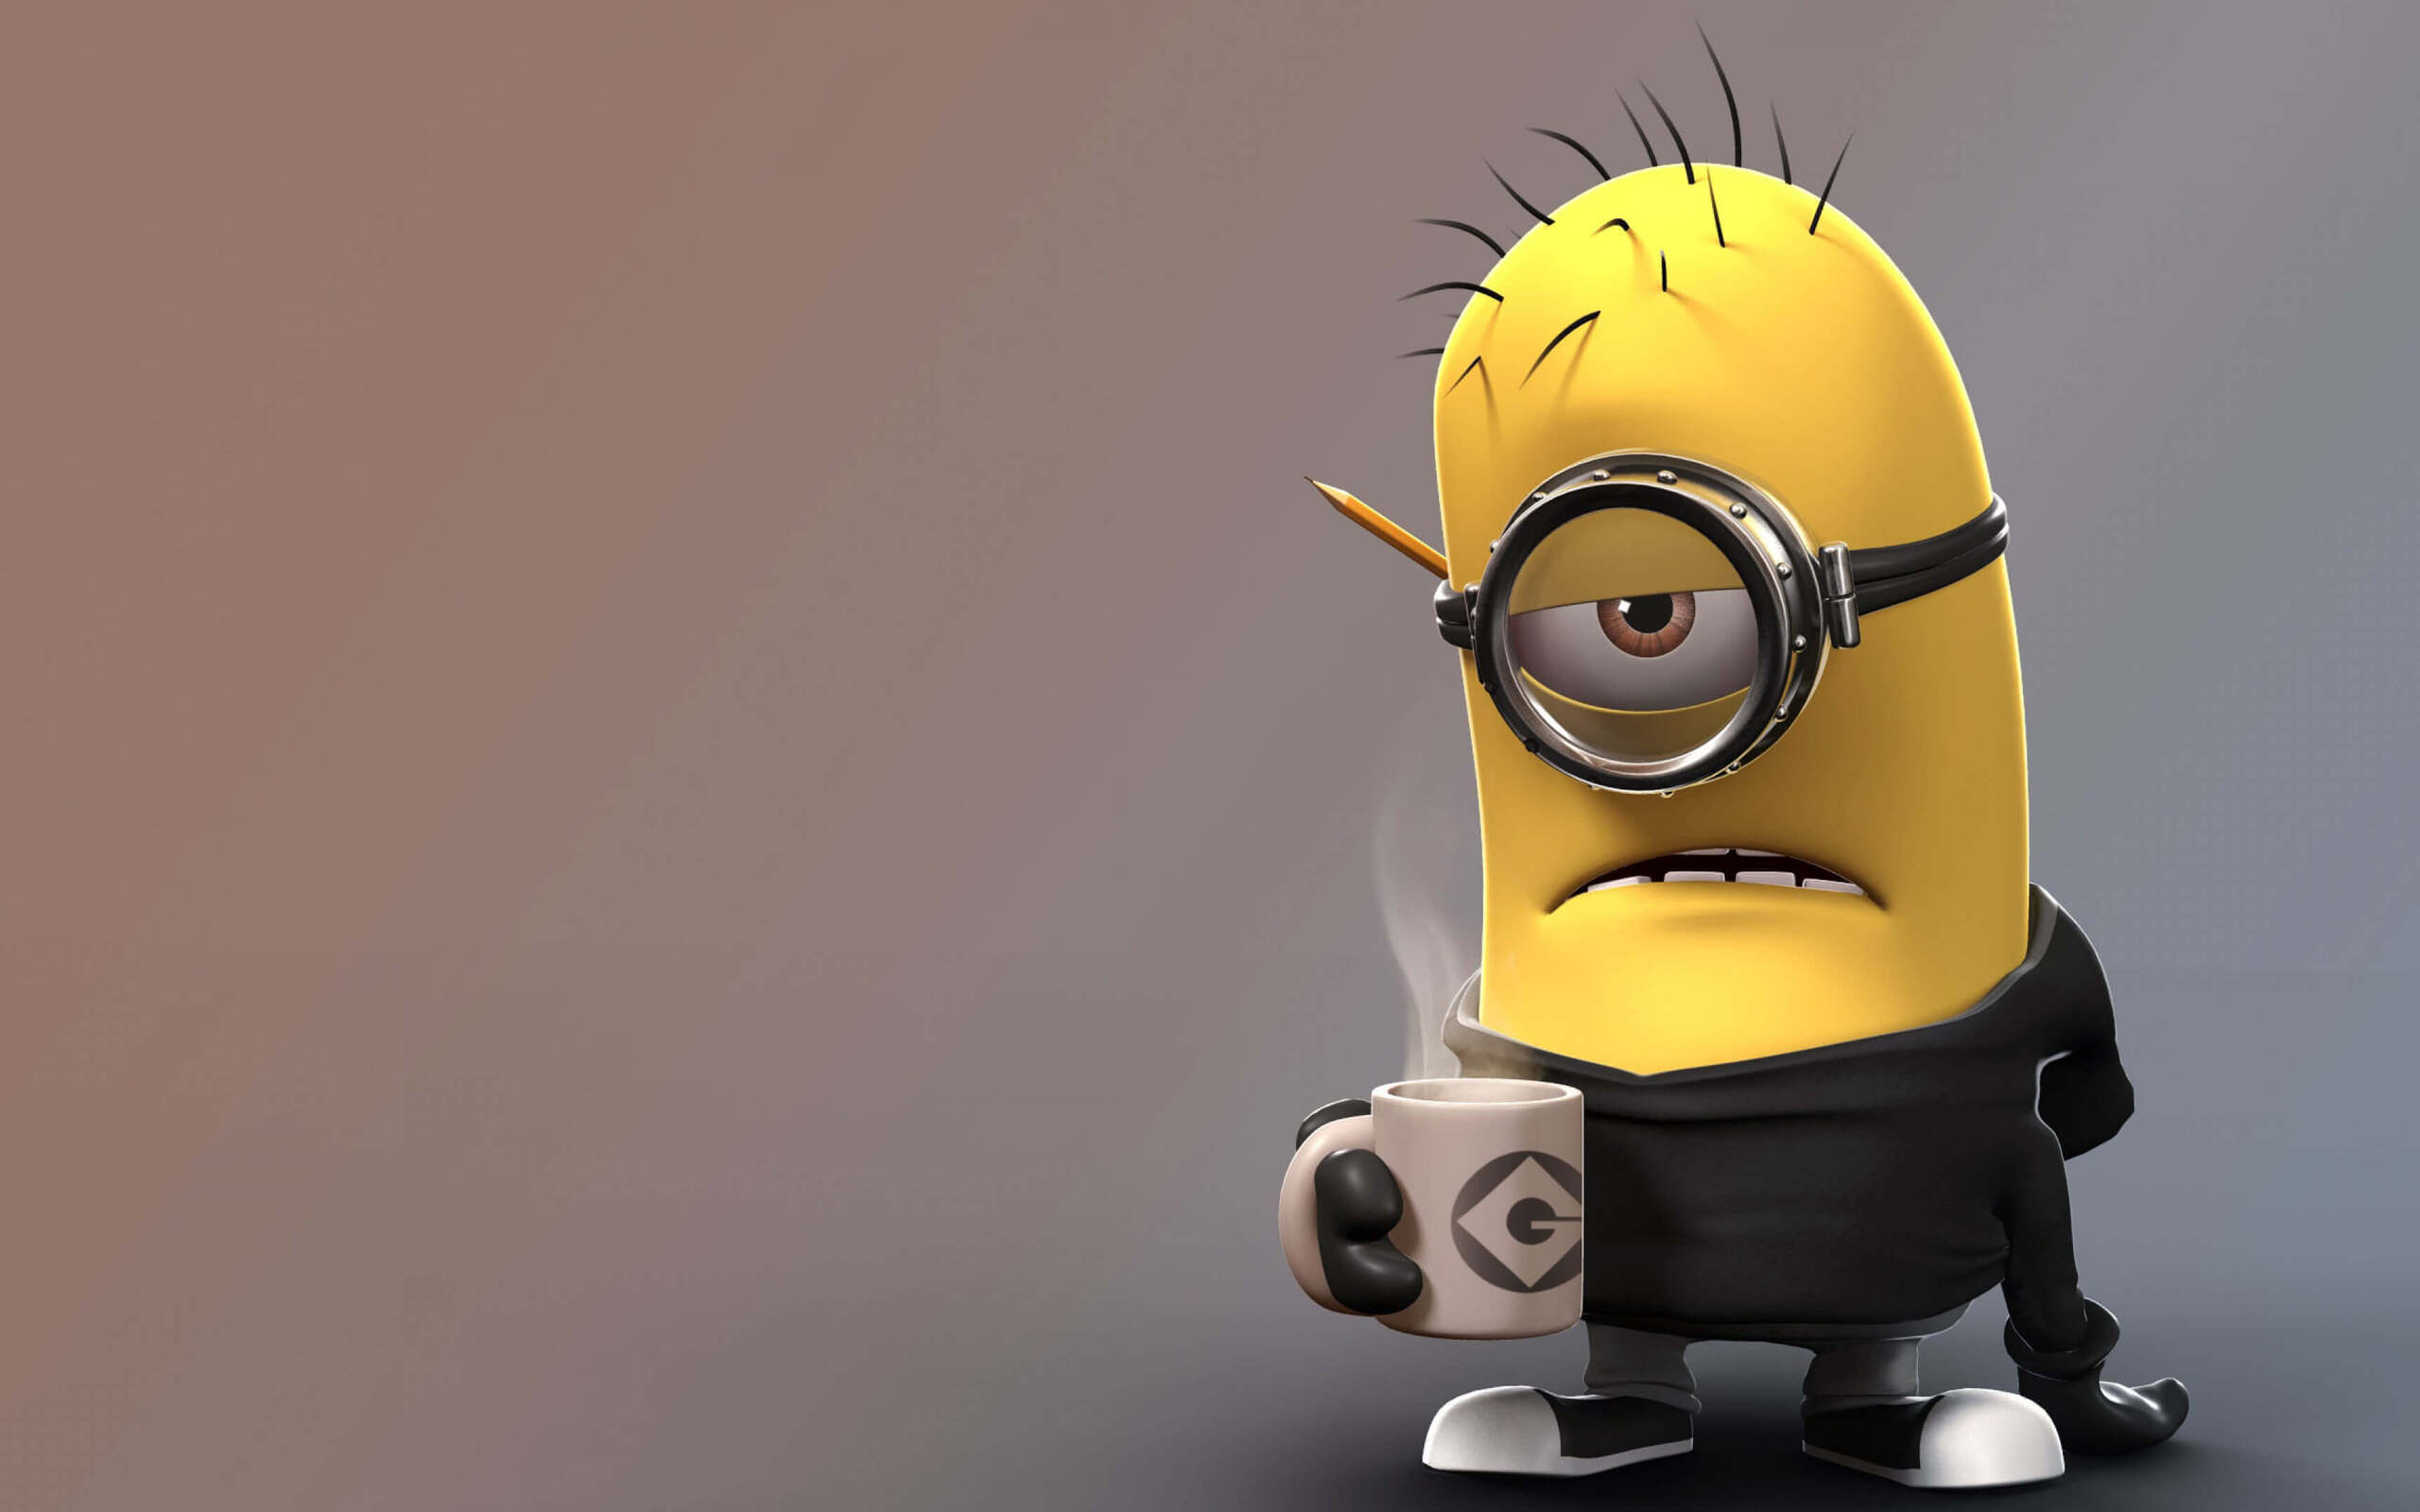 despicable-me-angry-minion-b9.jpg